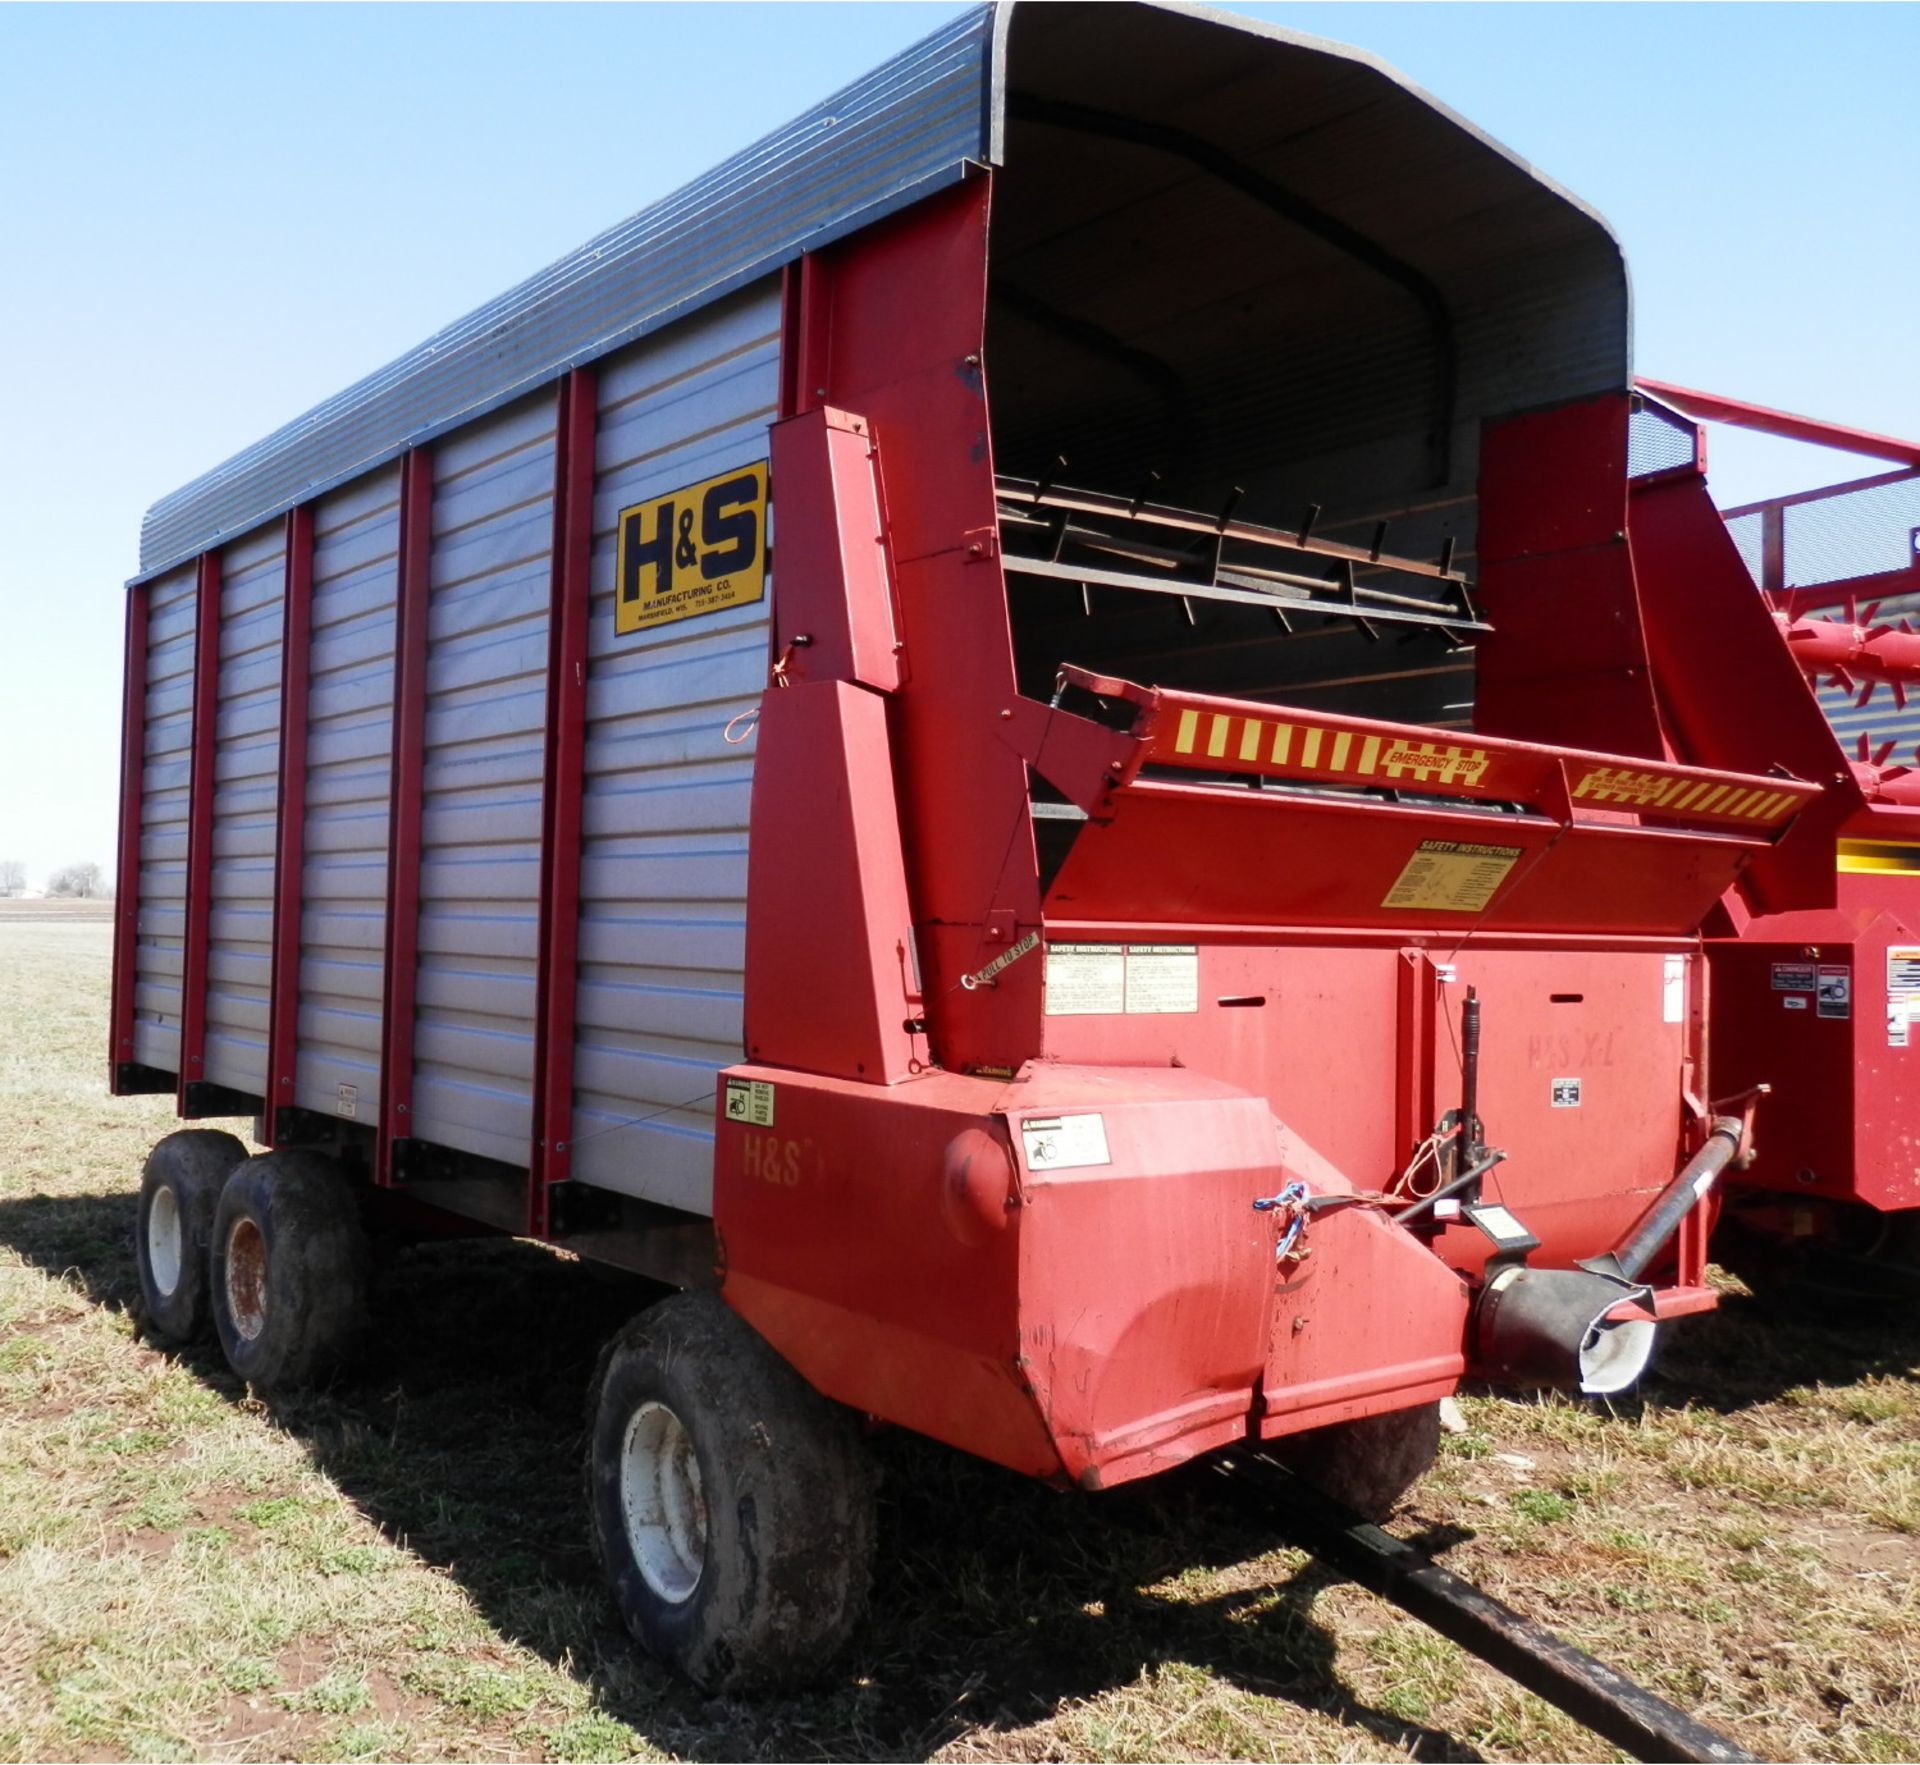 H&S XL-88 16' LH FORAGE WAGON - Image 2 of 6